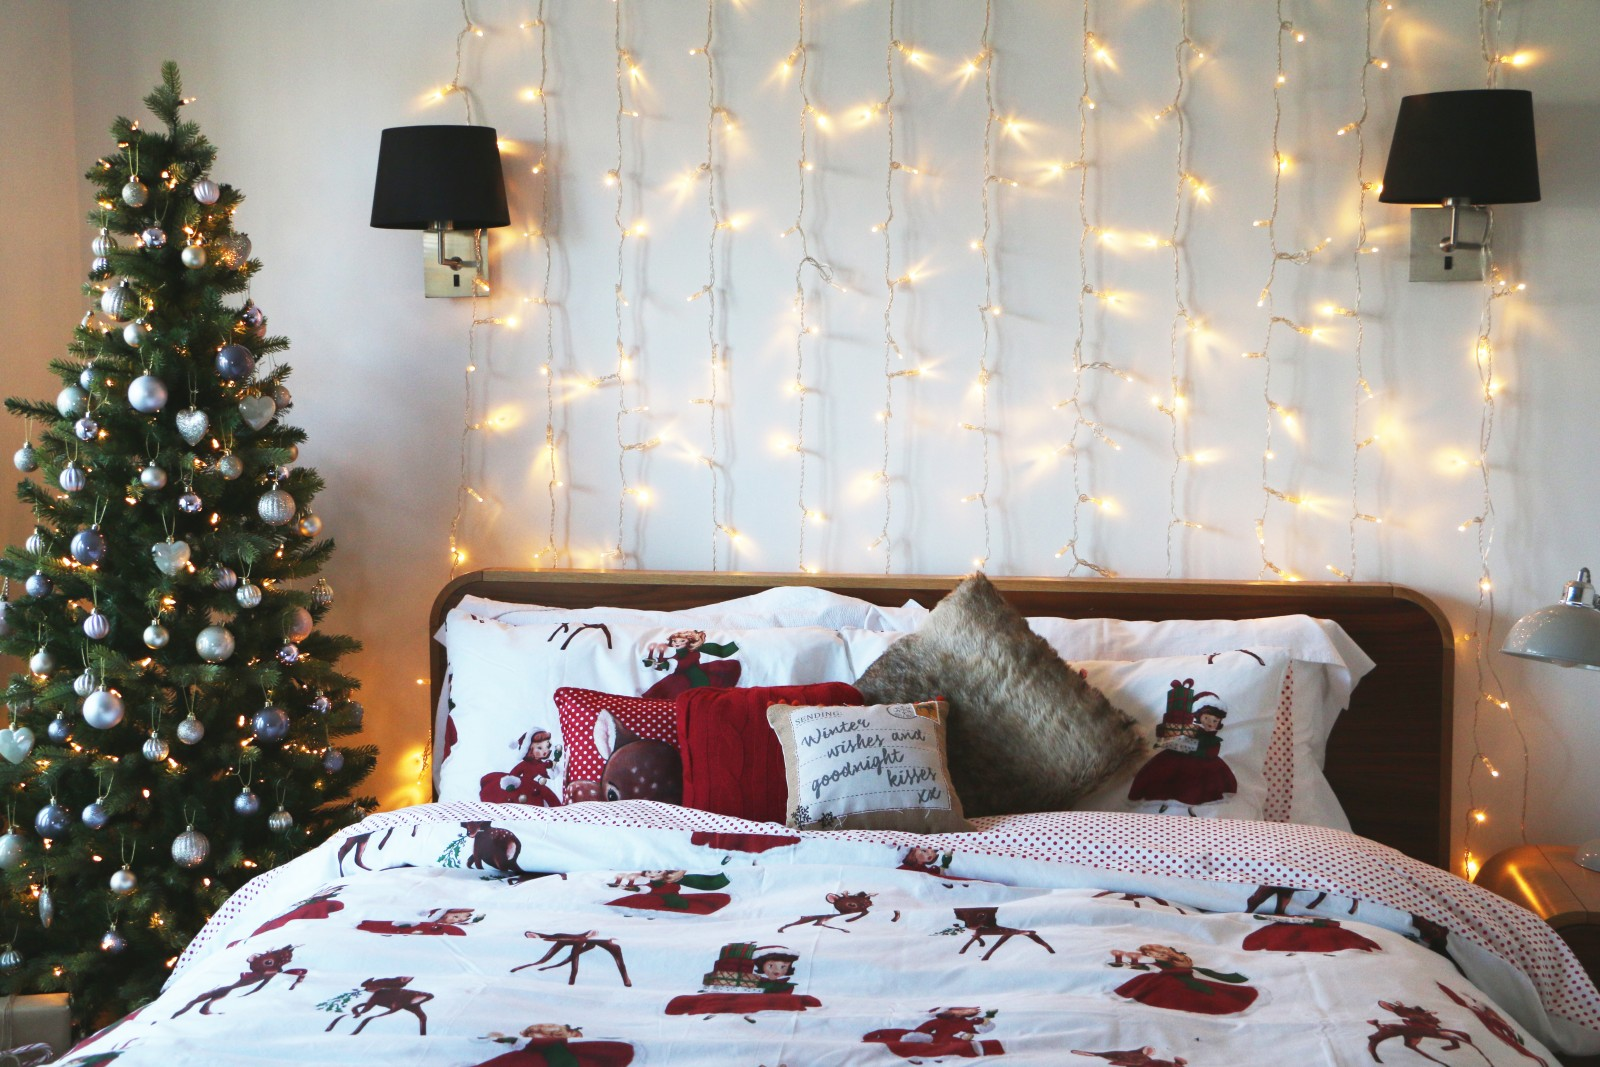 Christmas Bedroom via zoella.co.uk